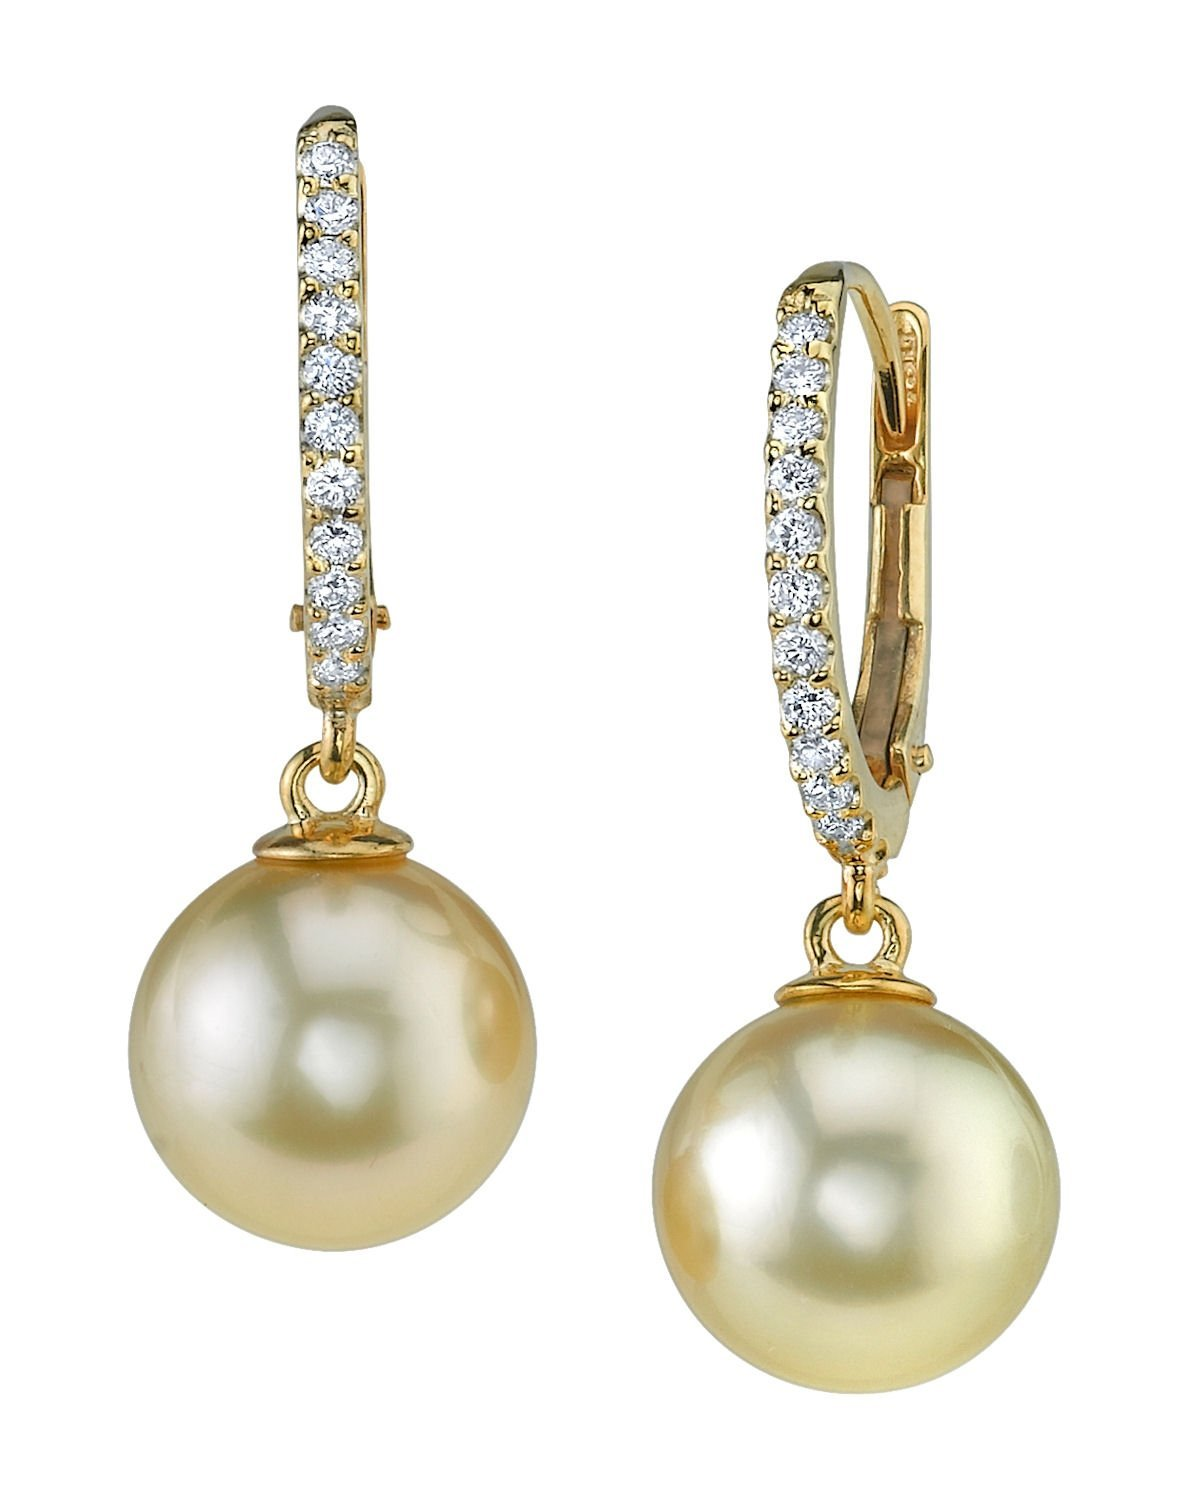 THE PEARL SOURCE 18K Gold 11-12mm Round Golden South Sea Cultured Pearl & Diamond Aurora Leverback Earrings for Women